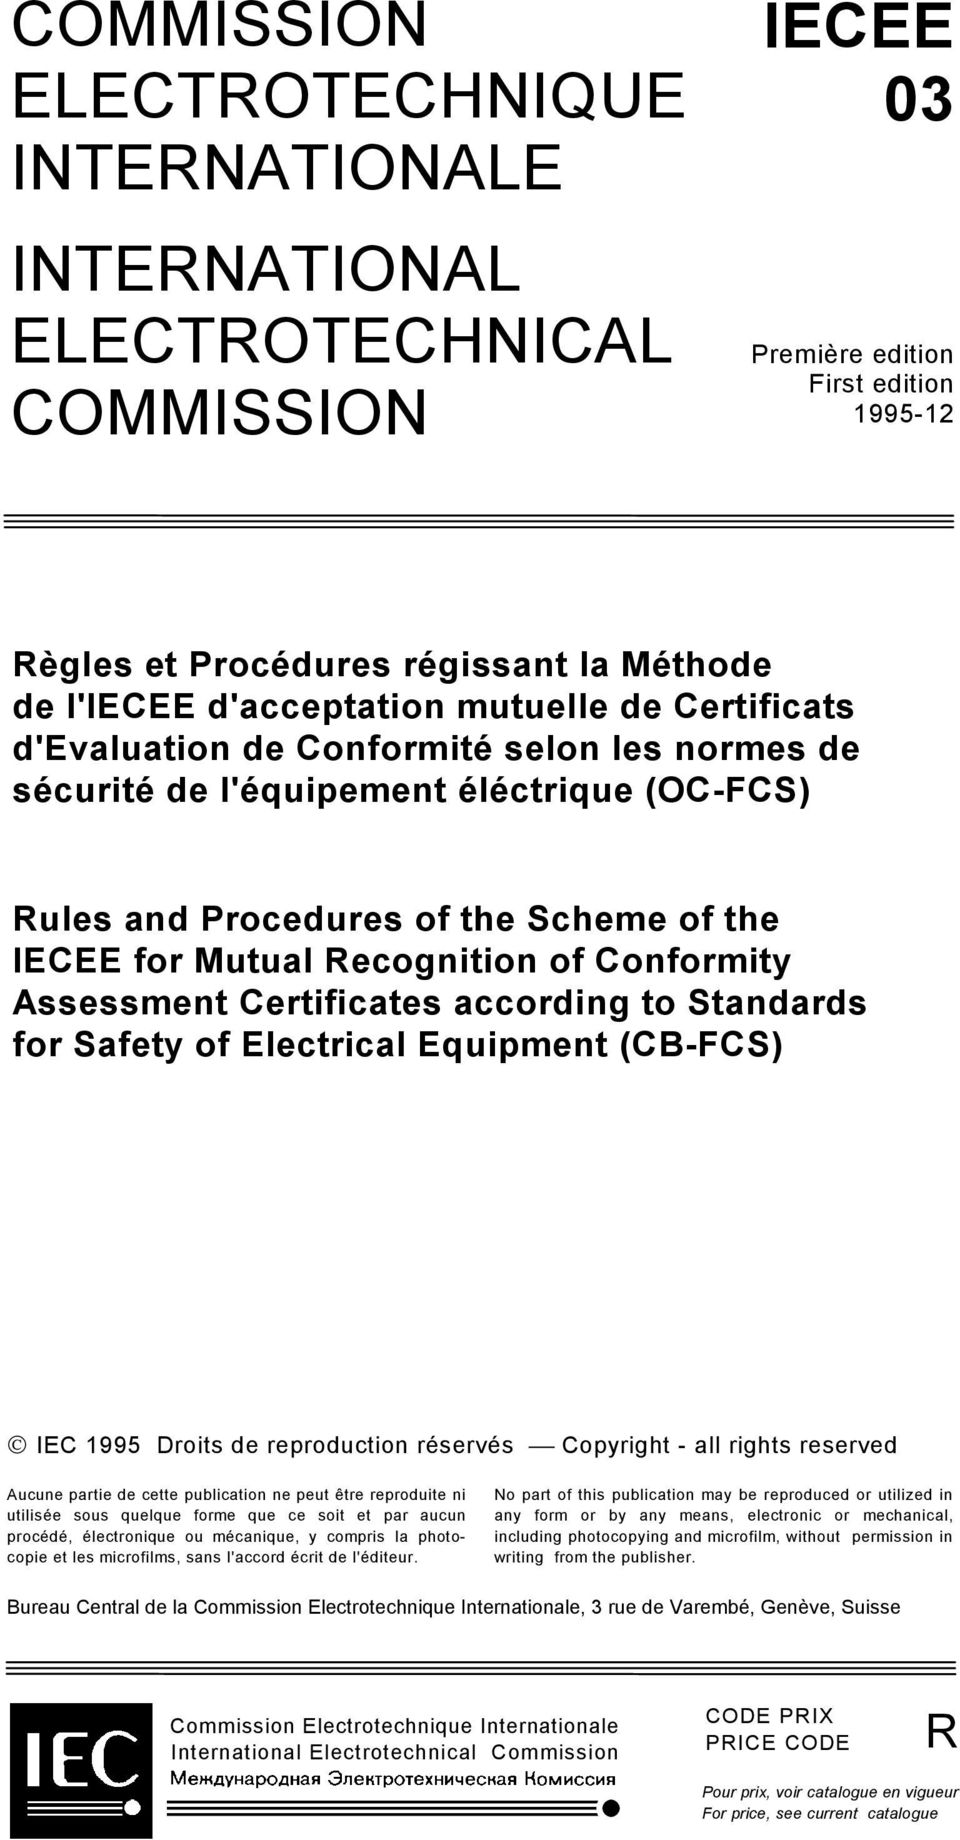 Conformity Assessment Certificates according to Standards for Safety of Electrical Equipment (CB-FCS) IEC 1995 Droits de reproduction réservés Copyright - all rights reserved Aucune partie de cette